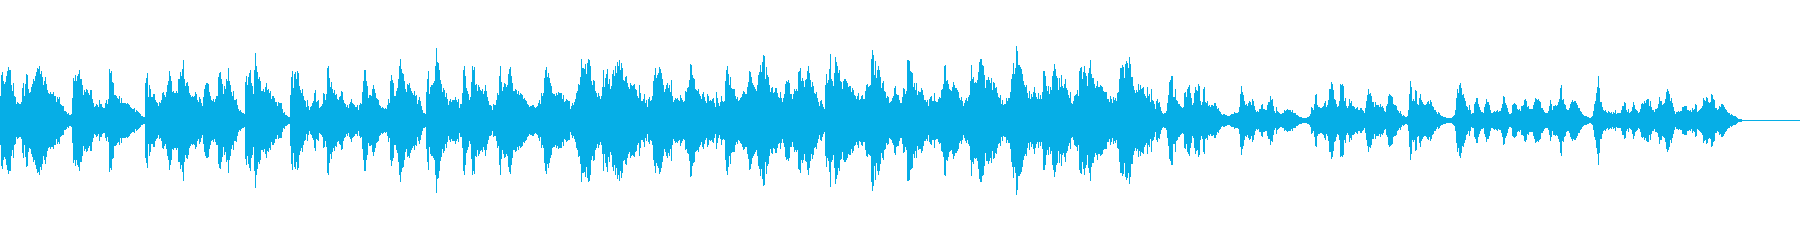 A peaceful Chinese folk song's reproduced waveform